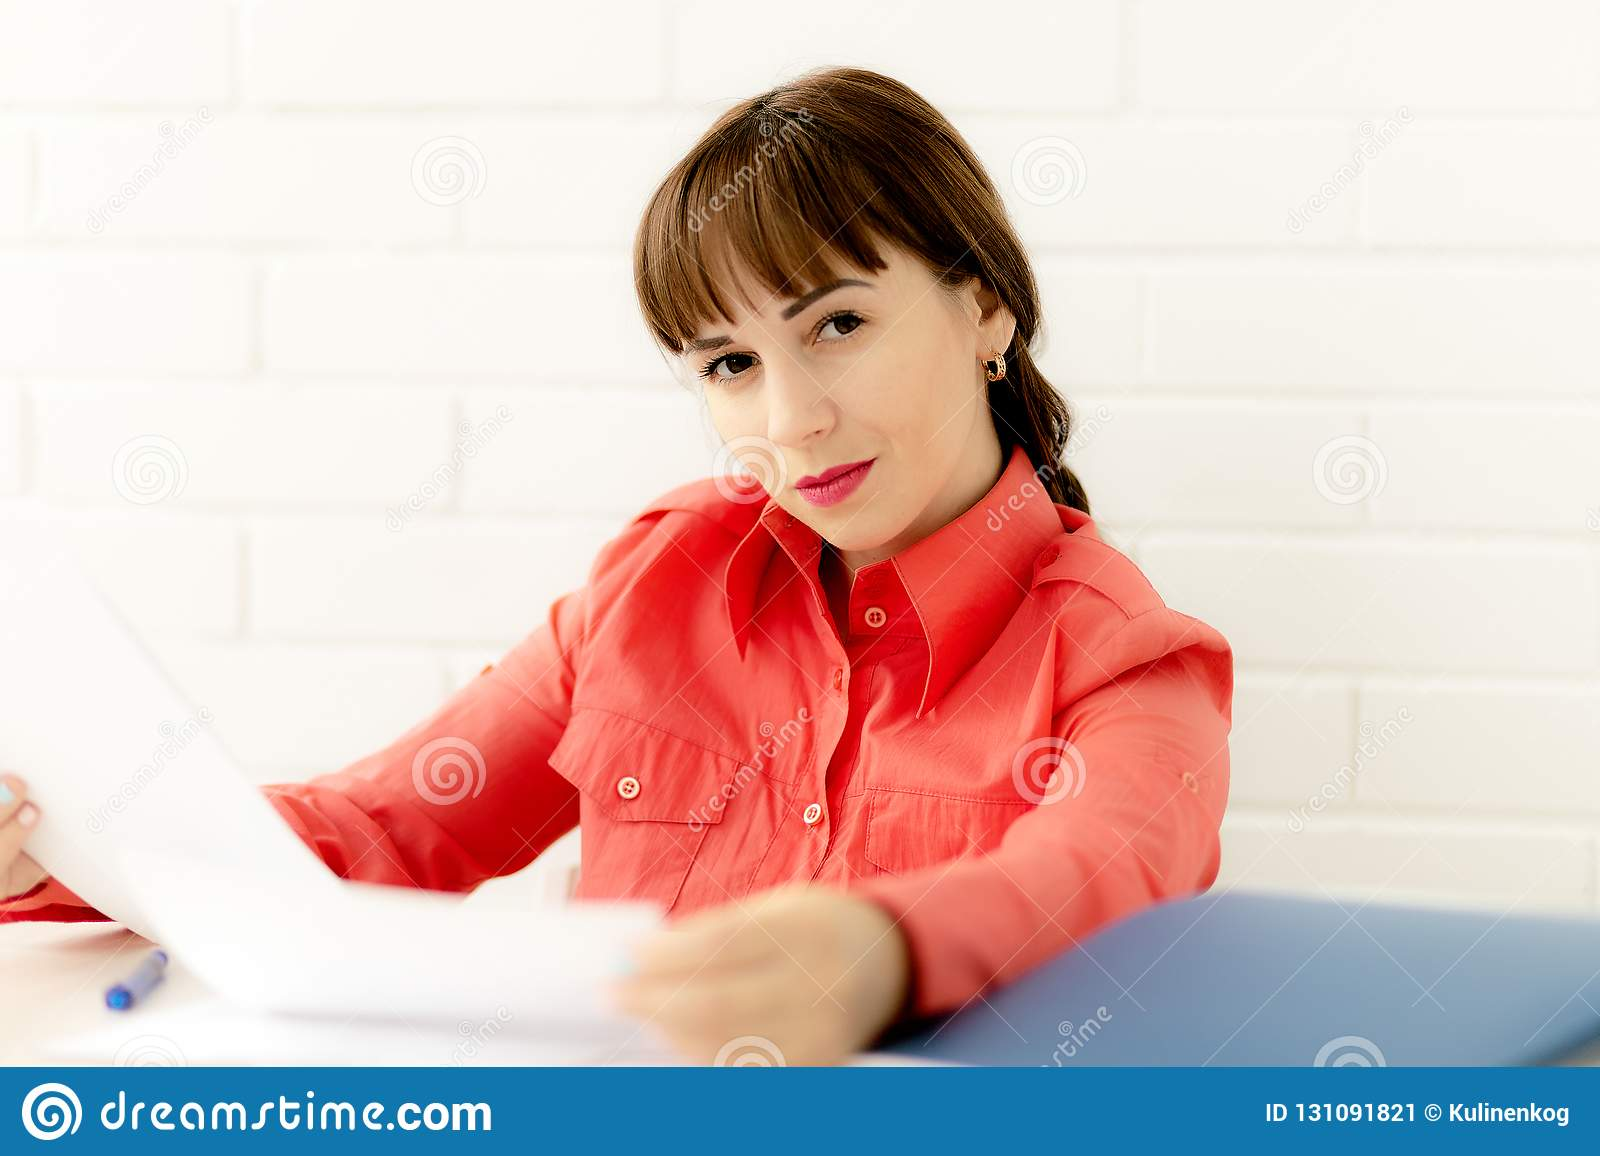 Ortrait of young happy smiling business woman working with documents at office